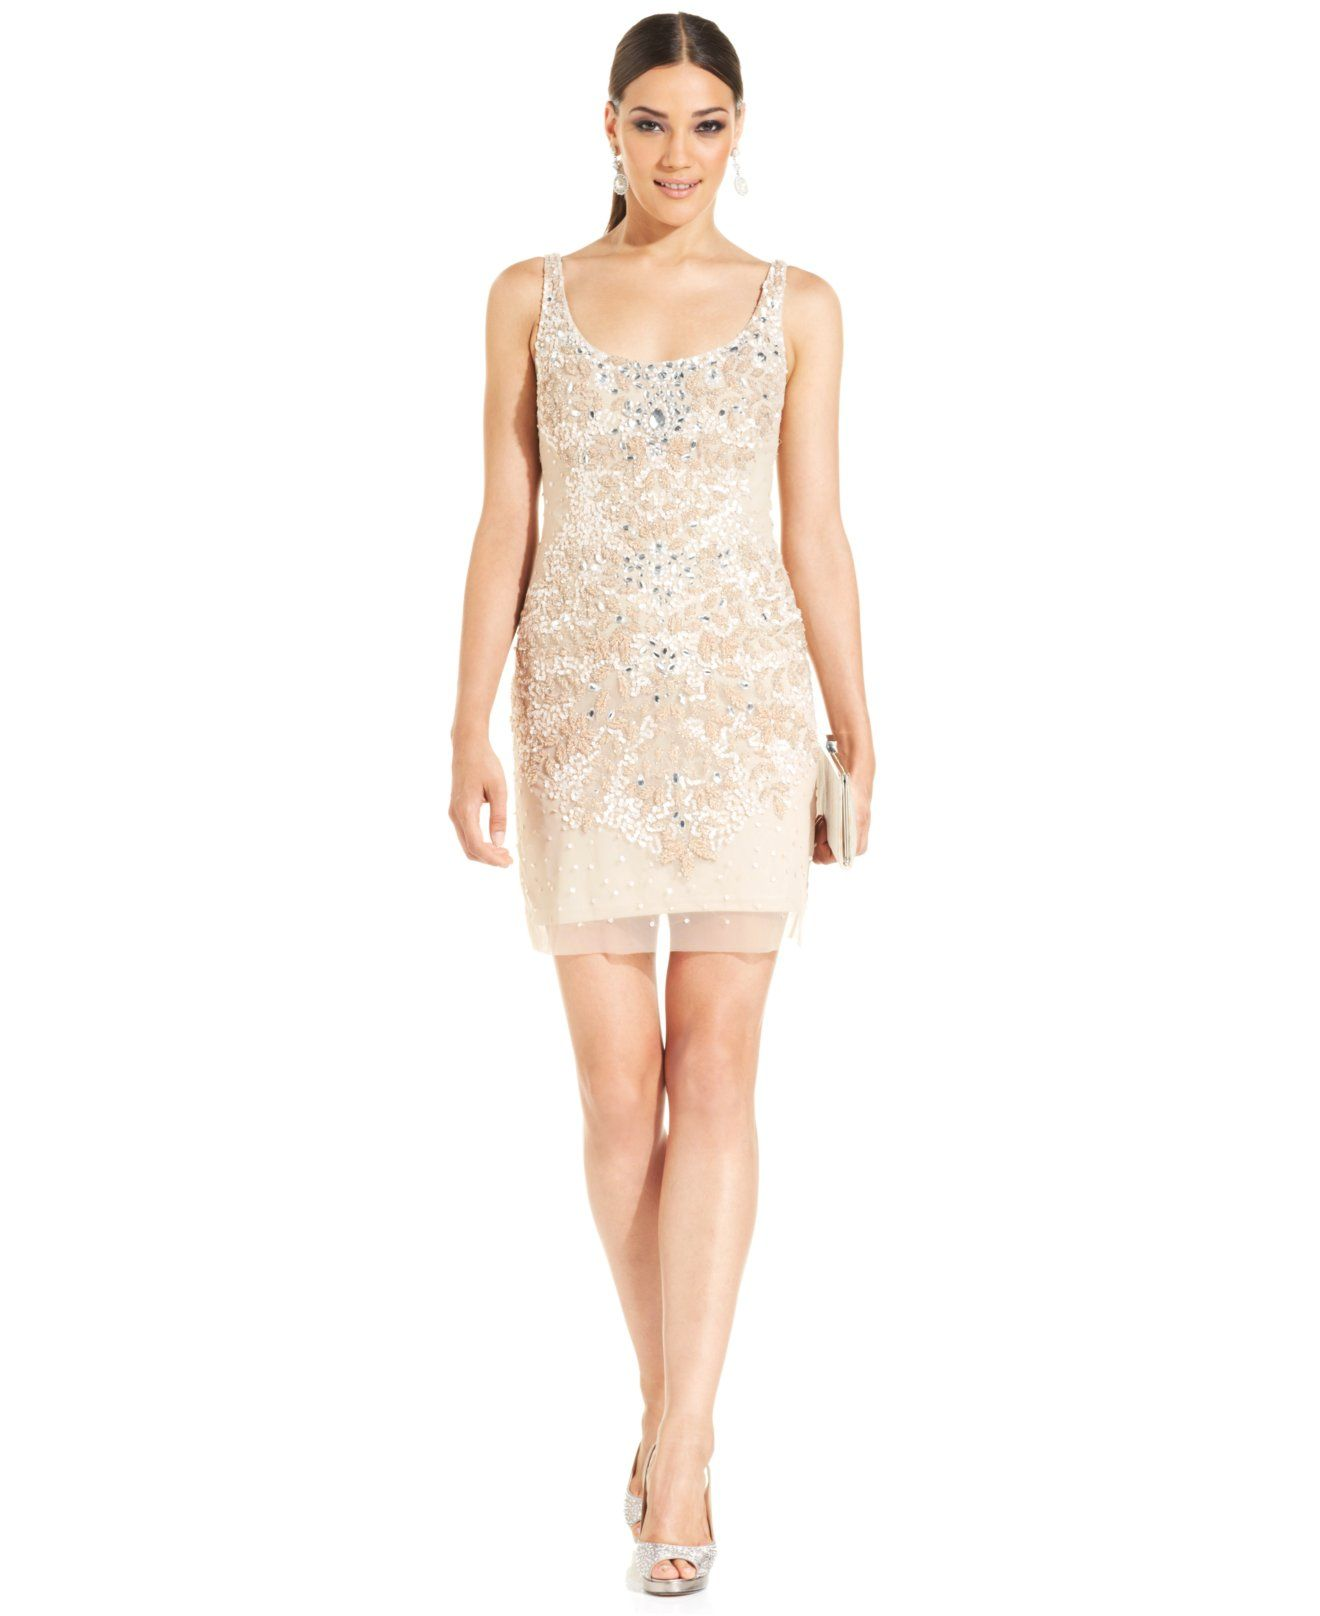 Adrianna papell floral embellished sheath shop all wedding shop the latest styles of juniors dresses at macys check out our wide collection of chic dresses for all occasions including top designer brands and more ombrellifo Images